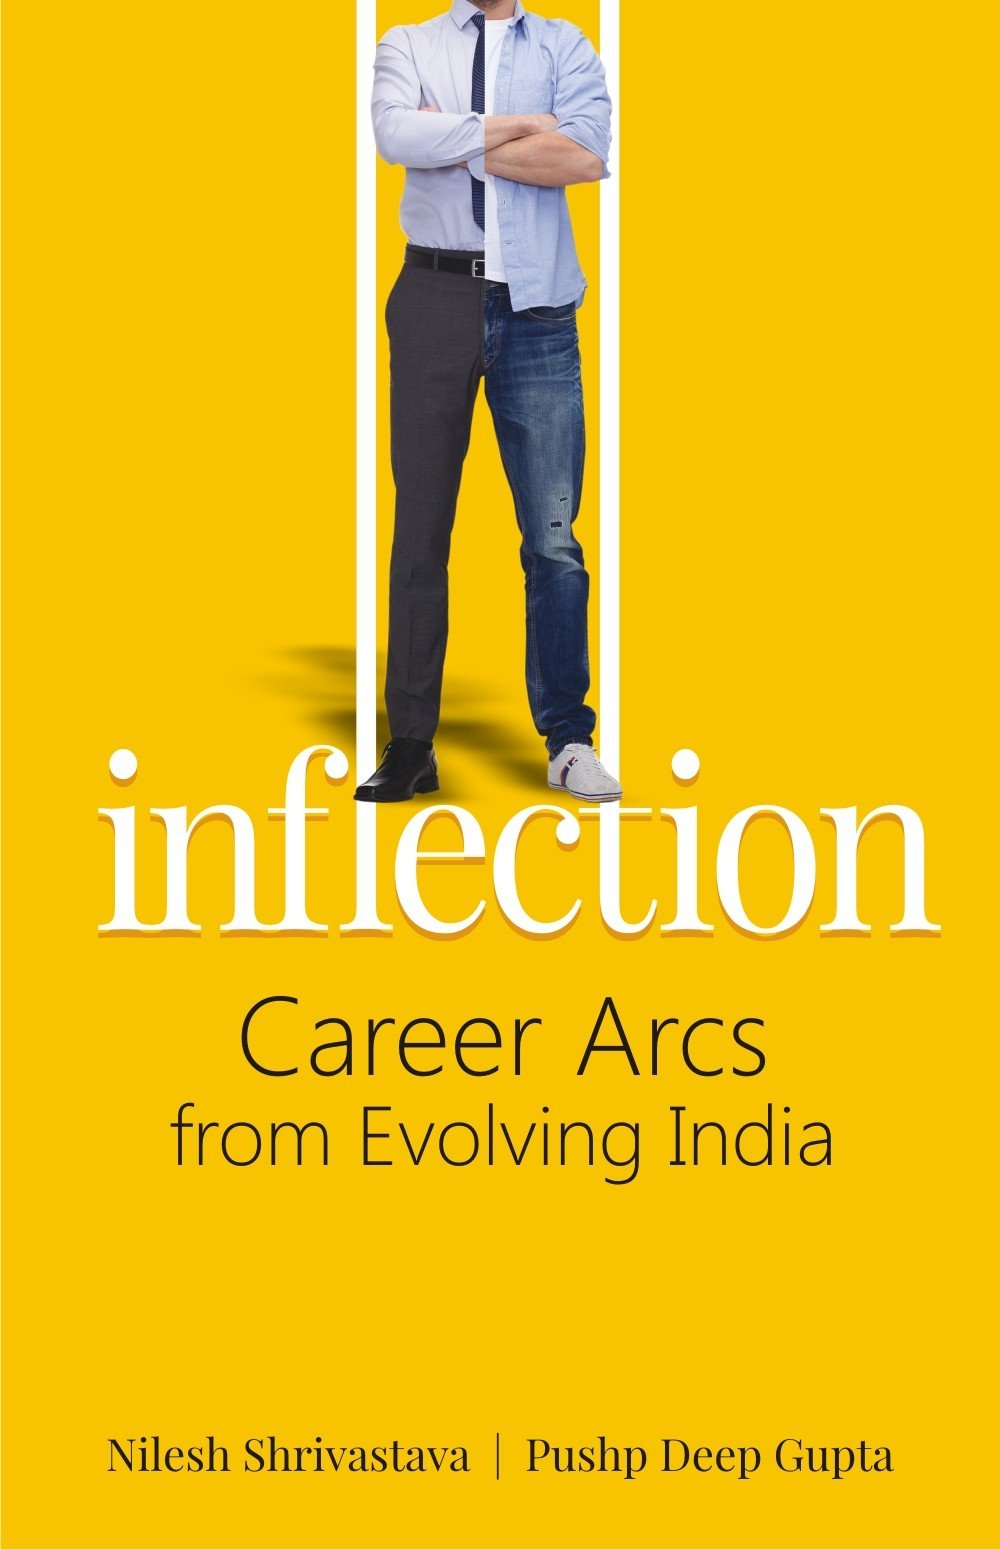 Inflection: Career Arcs from Evolving India